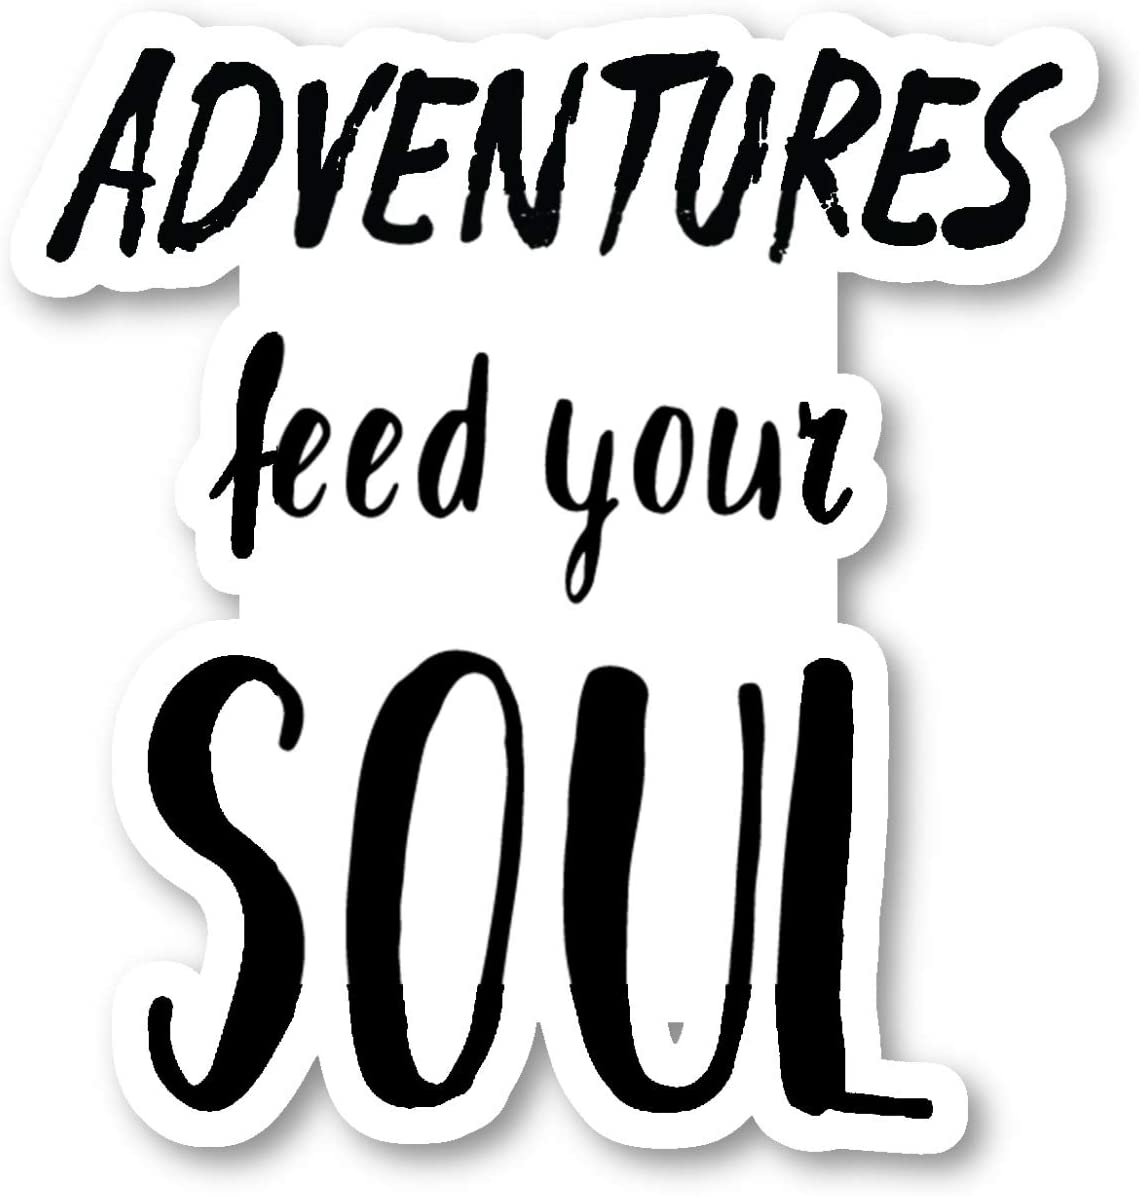 Adventure Feed Your Soul Sticker Travel Wanderlust Stickers - Laptop Stickers - 2.5 Inches Vinyl Decal - Laptop, Phone, Tablet Vinyl Decal Sticker S214675